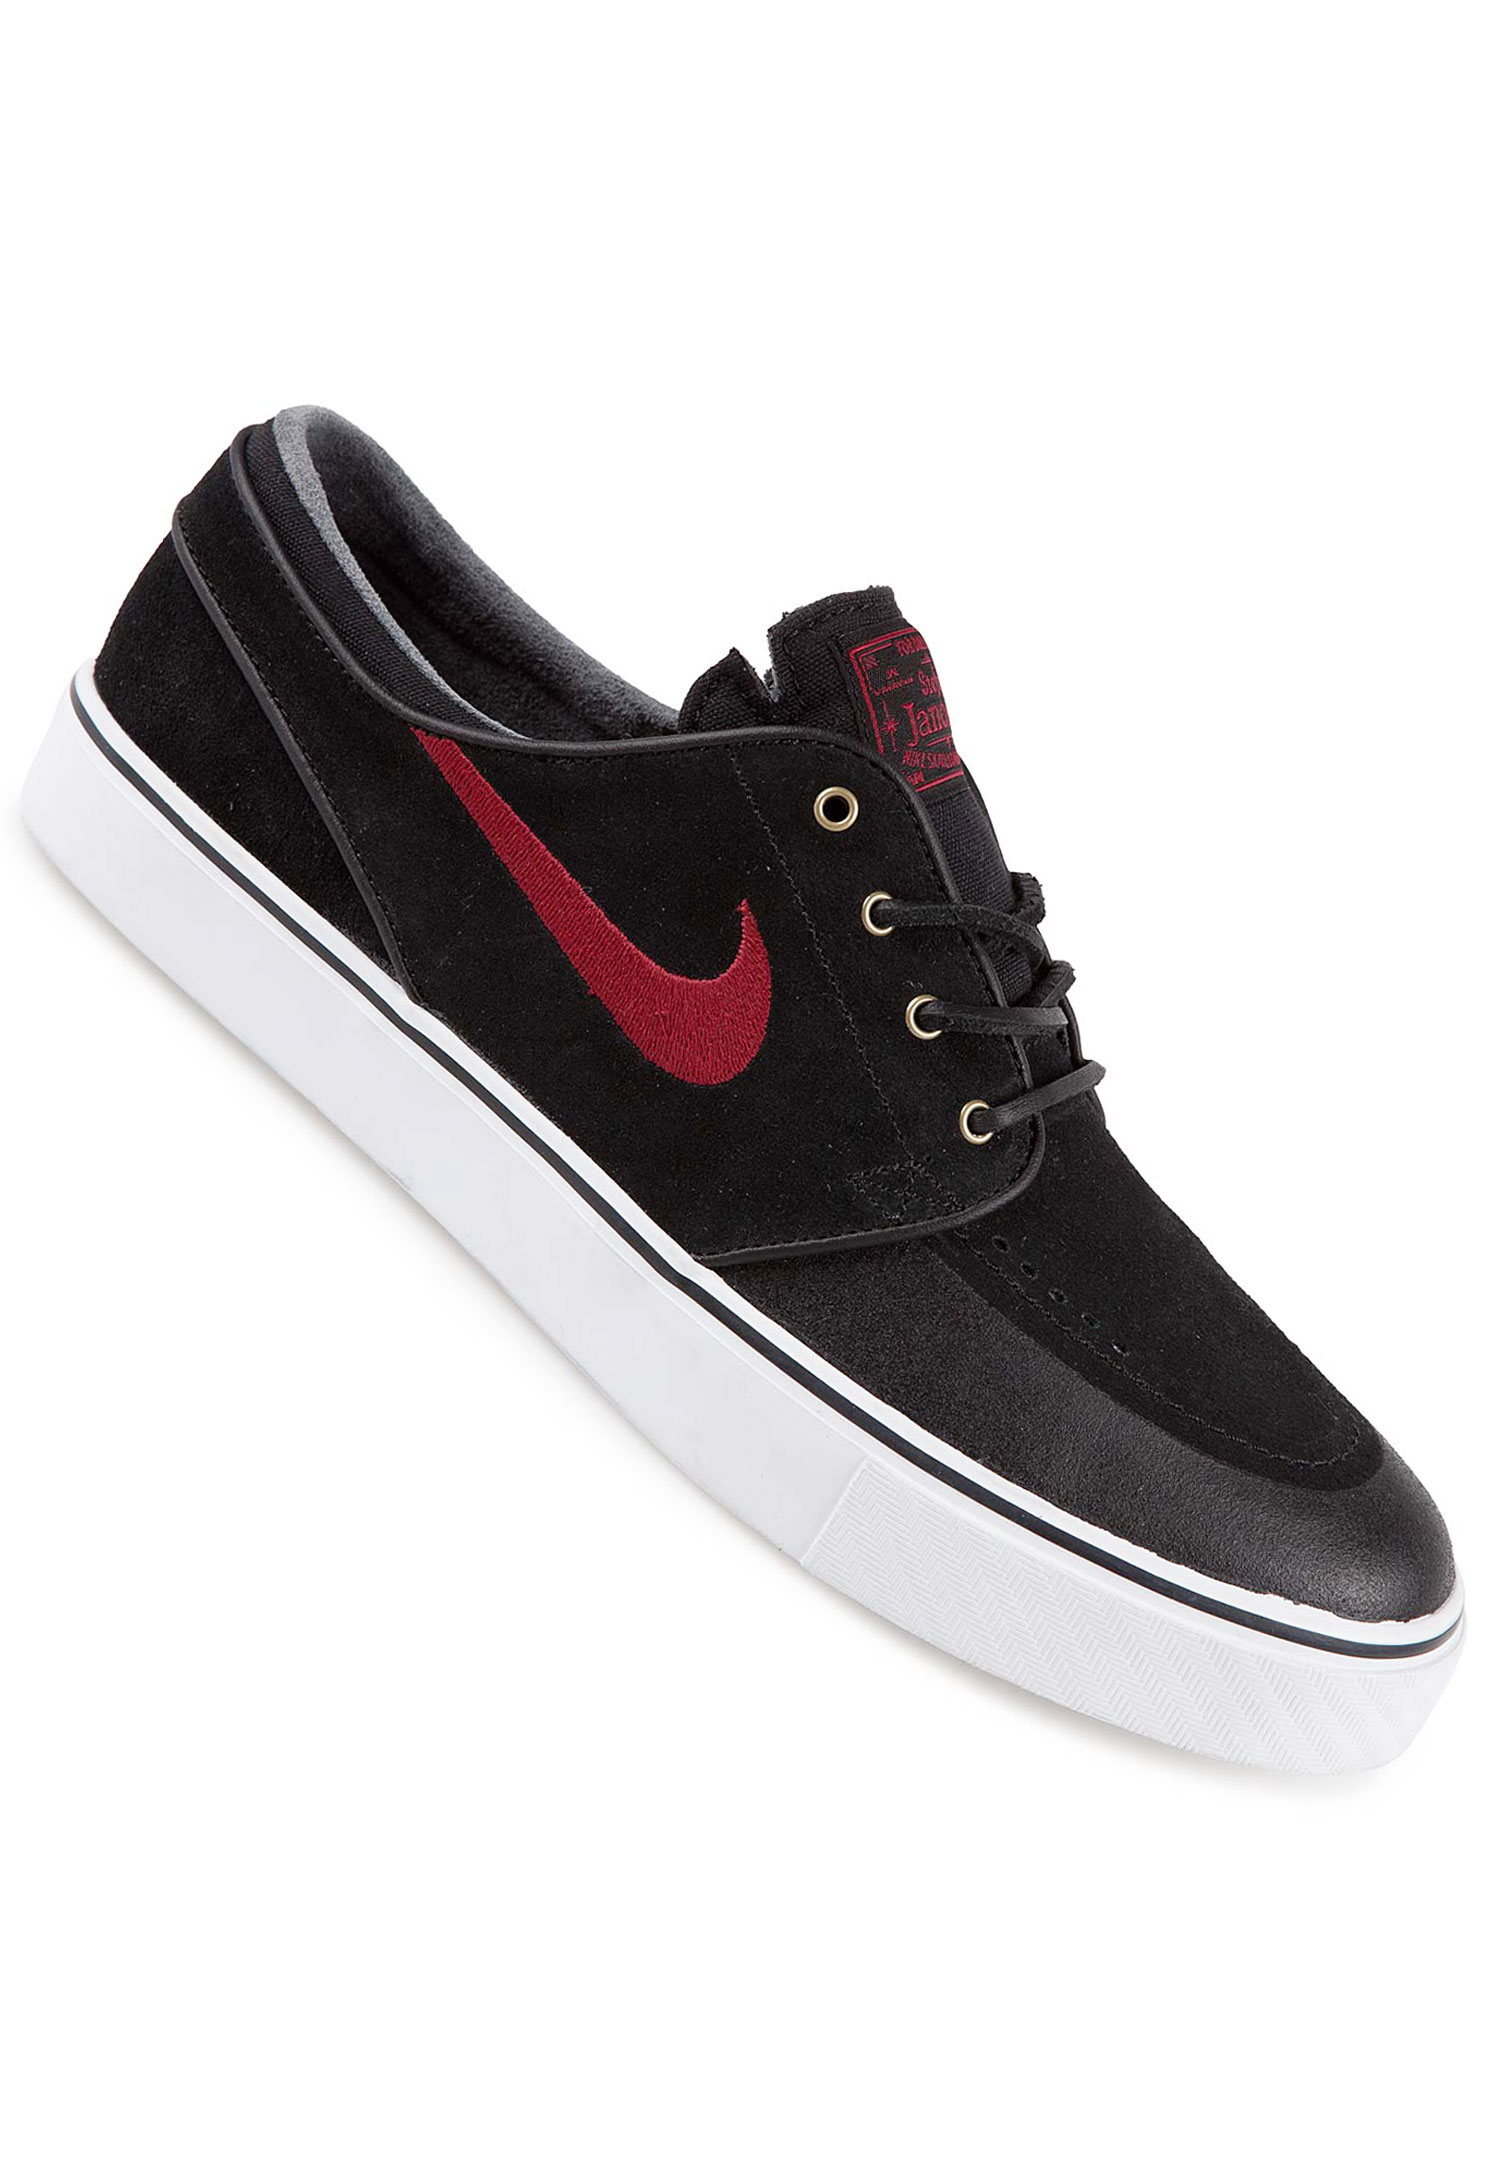 nike sb zoom stefan janoski premium se shoe black team red buy at skatedeluxe. Black Bedroom Furniture Sets. Home Design Ideas